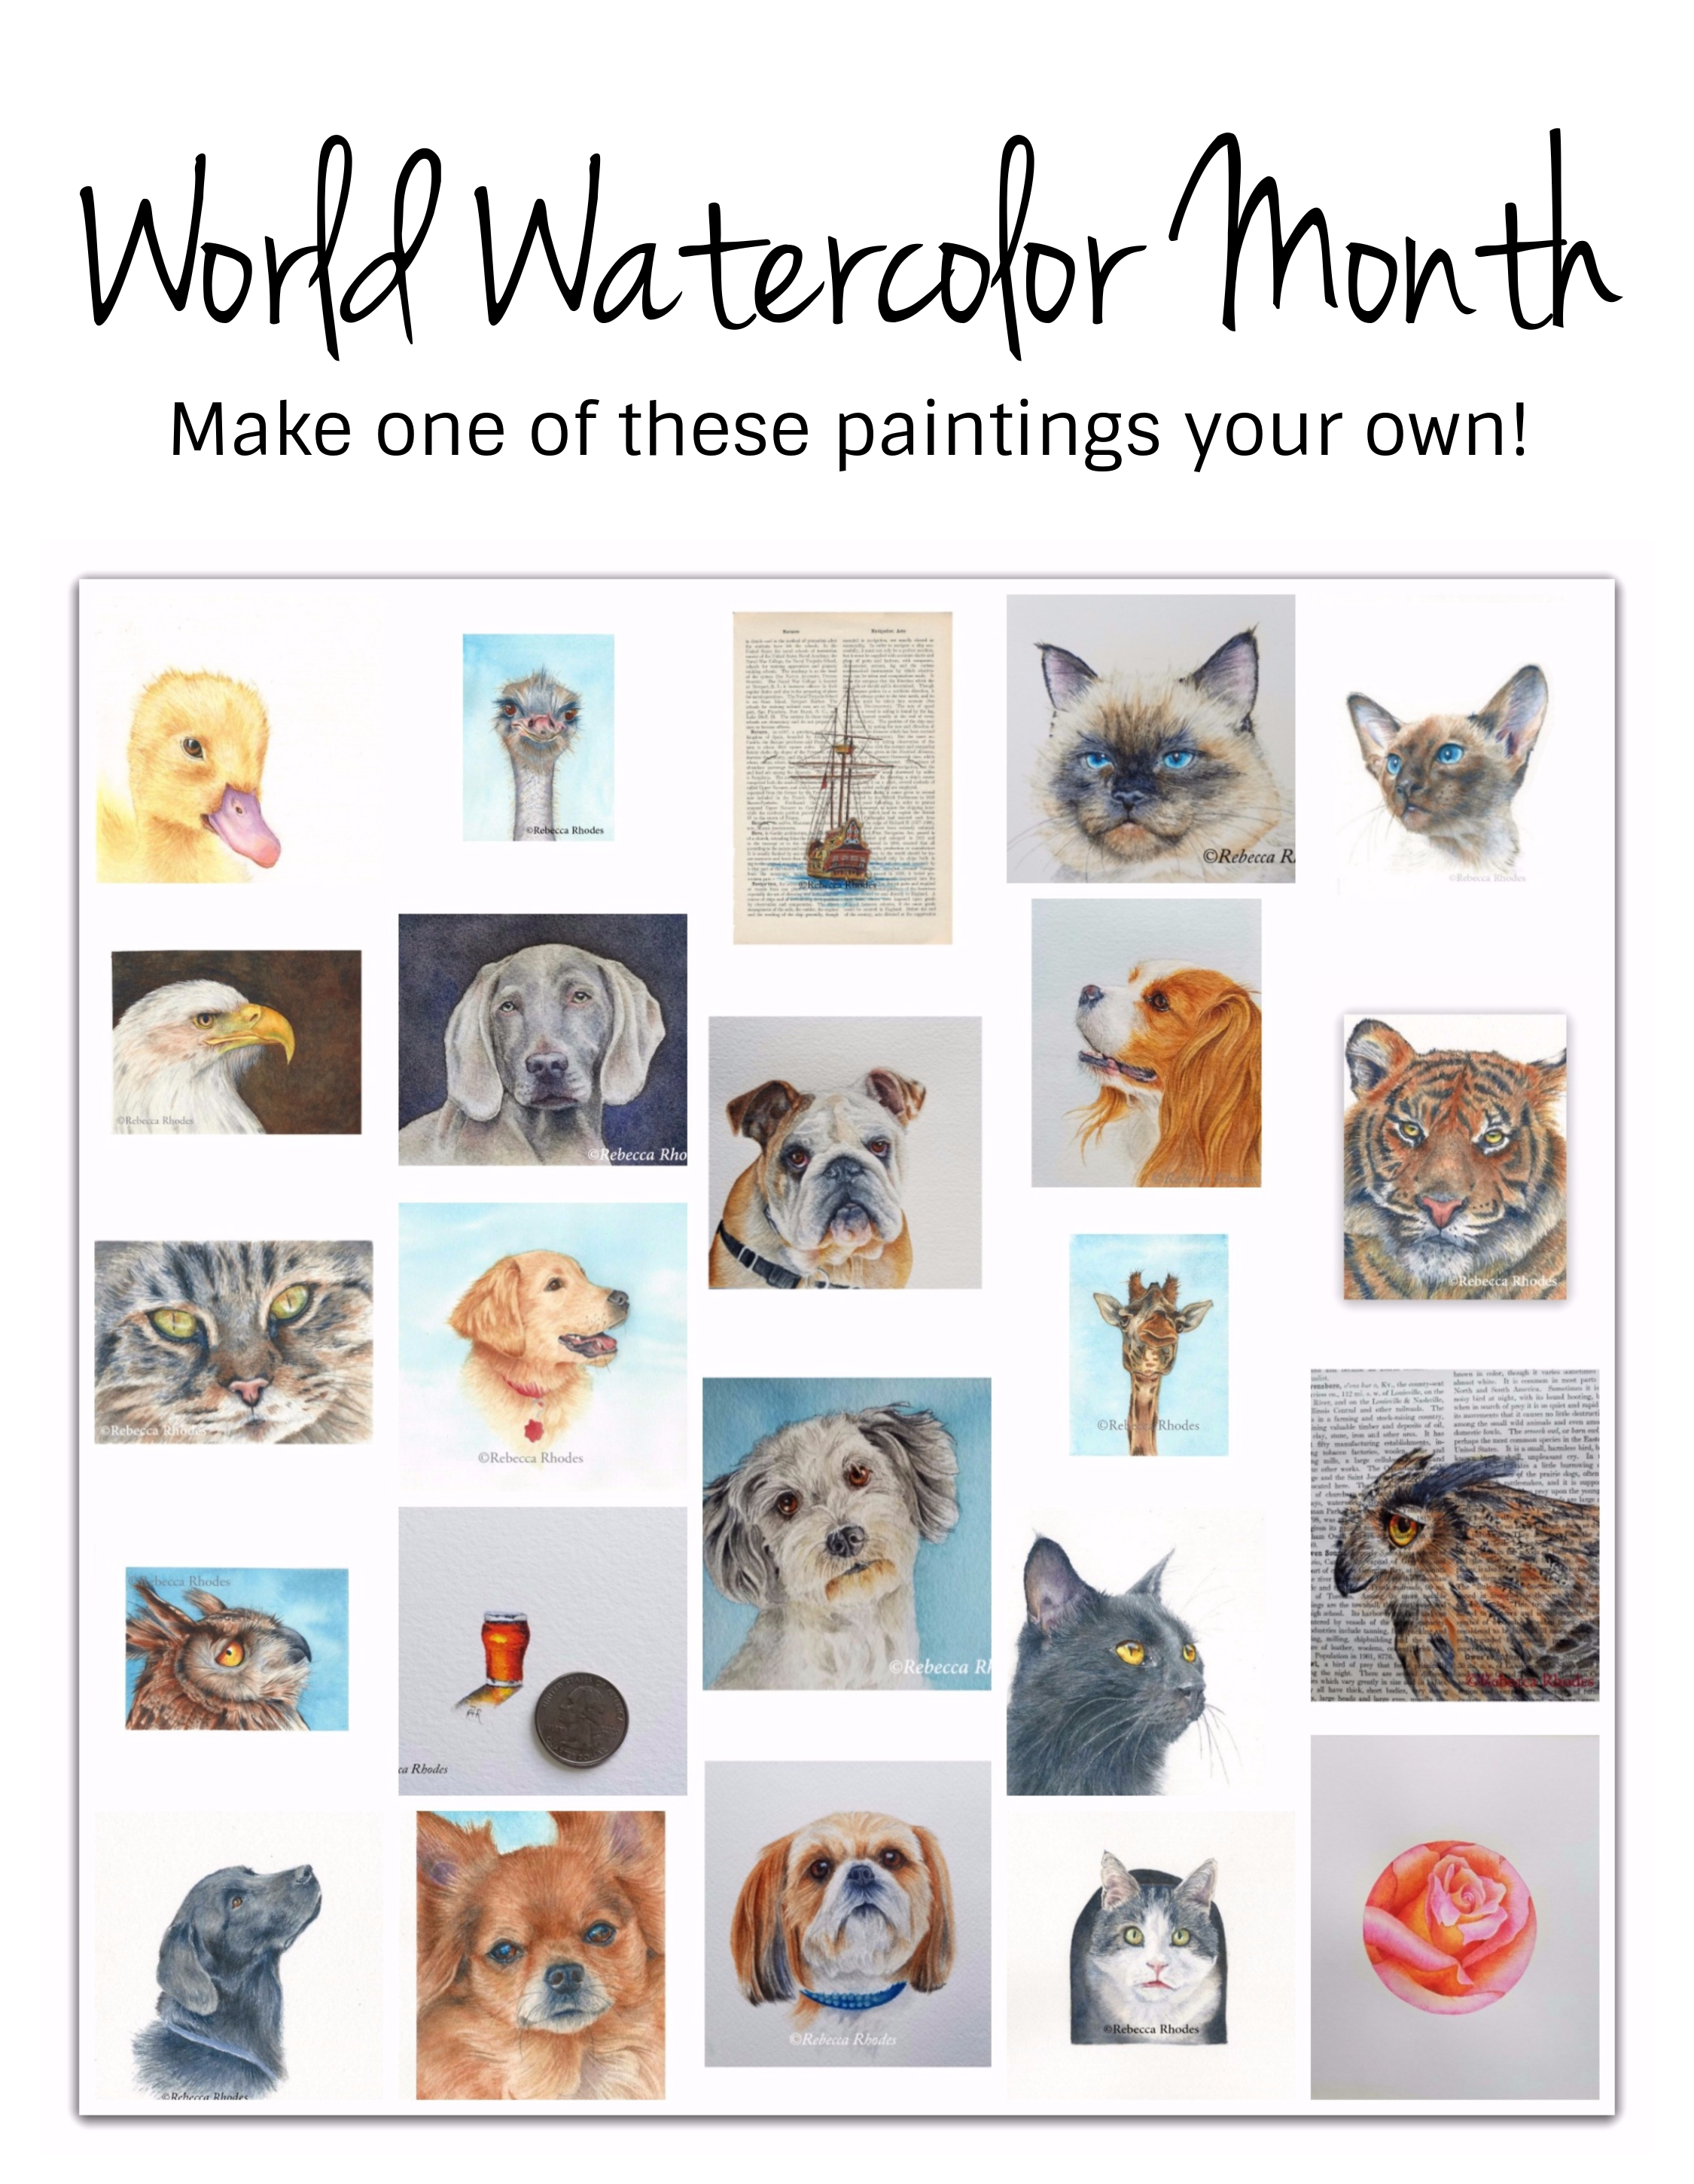 world watercolor month paintings, make one your own